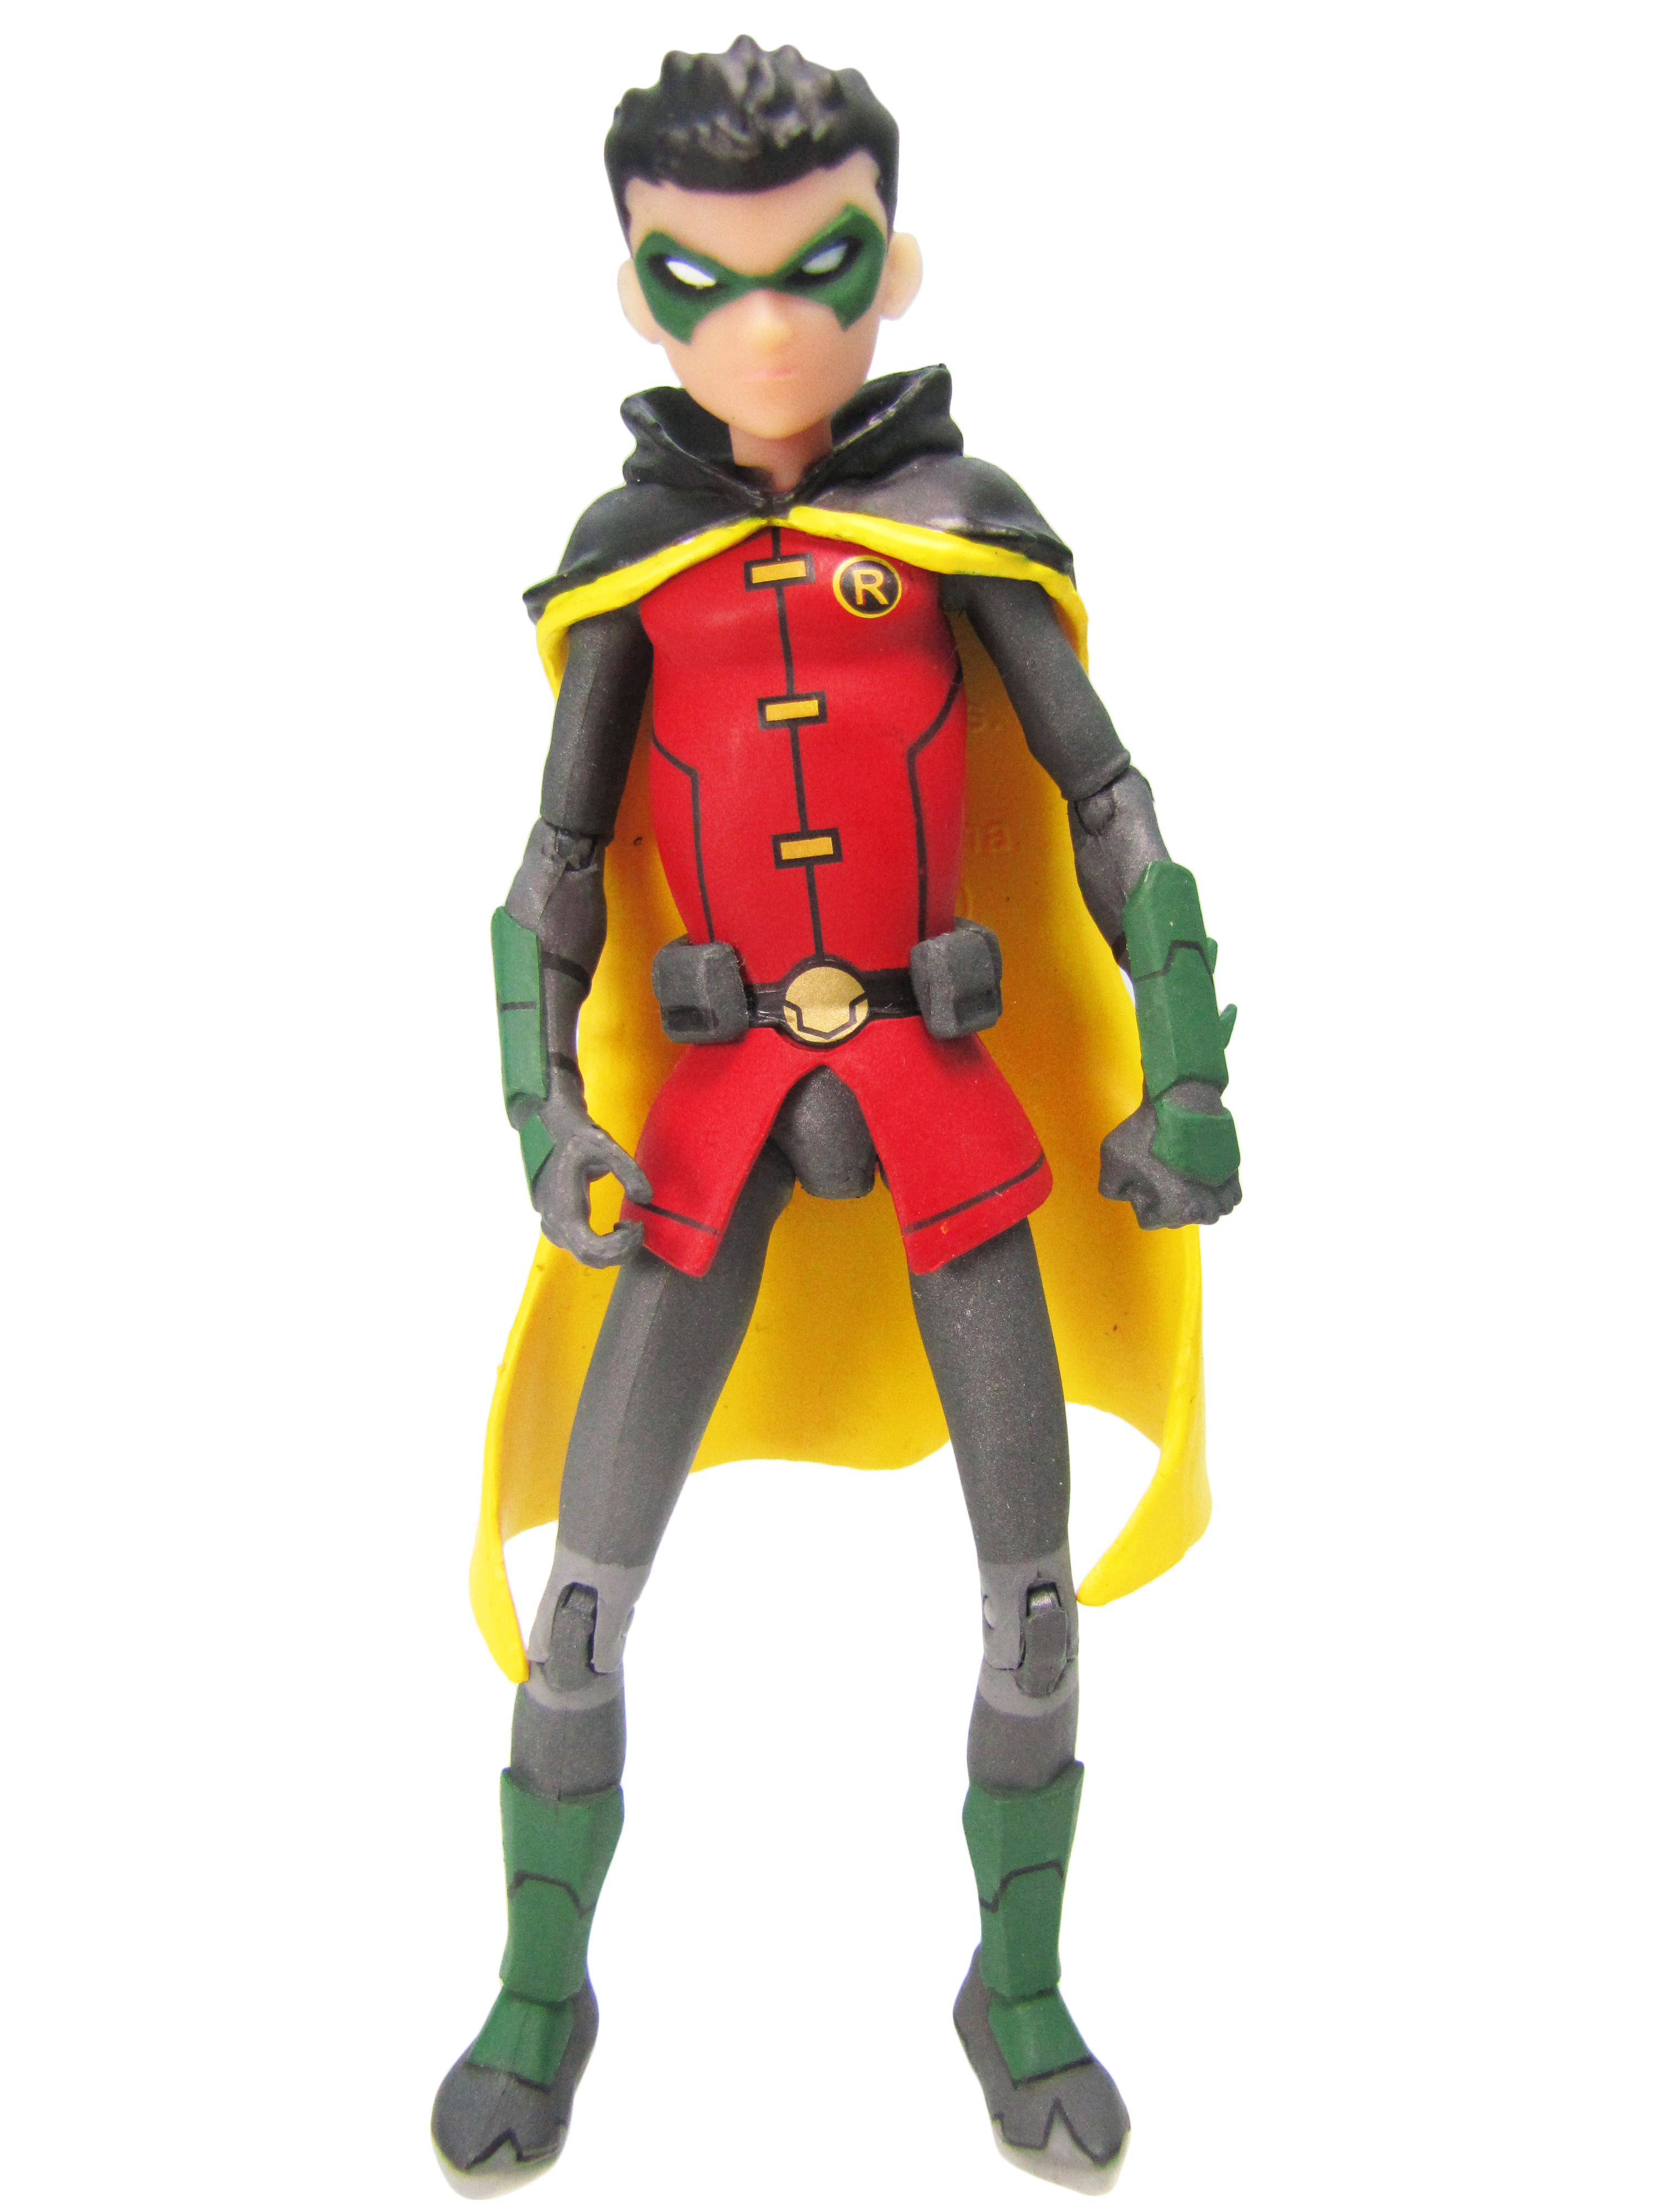 2014 Mattel DC Collectibles Son of Batman ROBIN DAMIAN WAYNE Mint